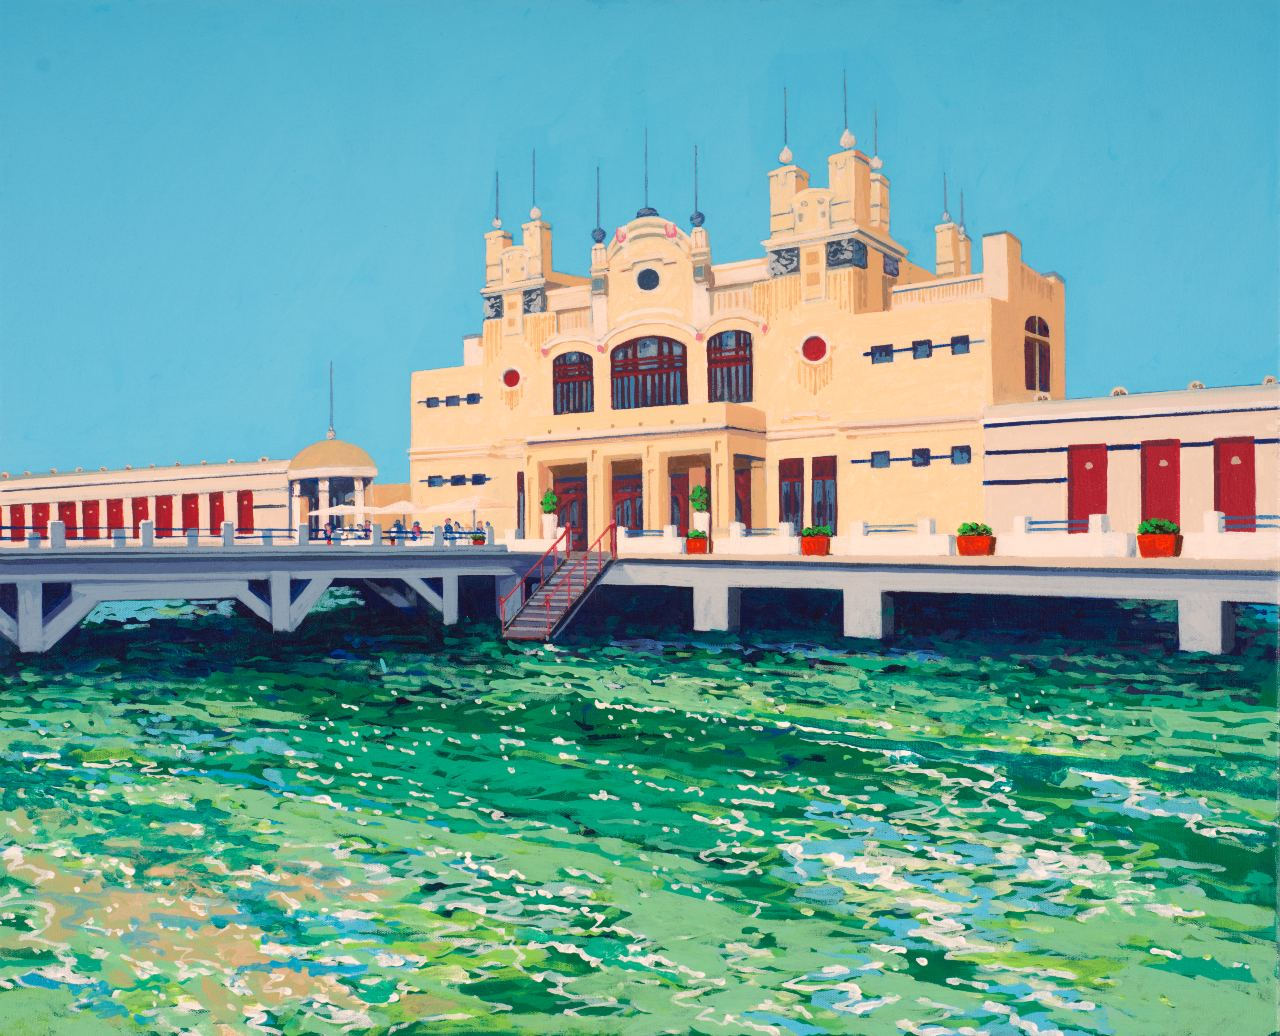 The Antico Stabilimento Balneare, Mondello beach, Palermo